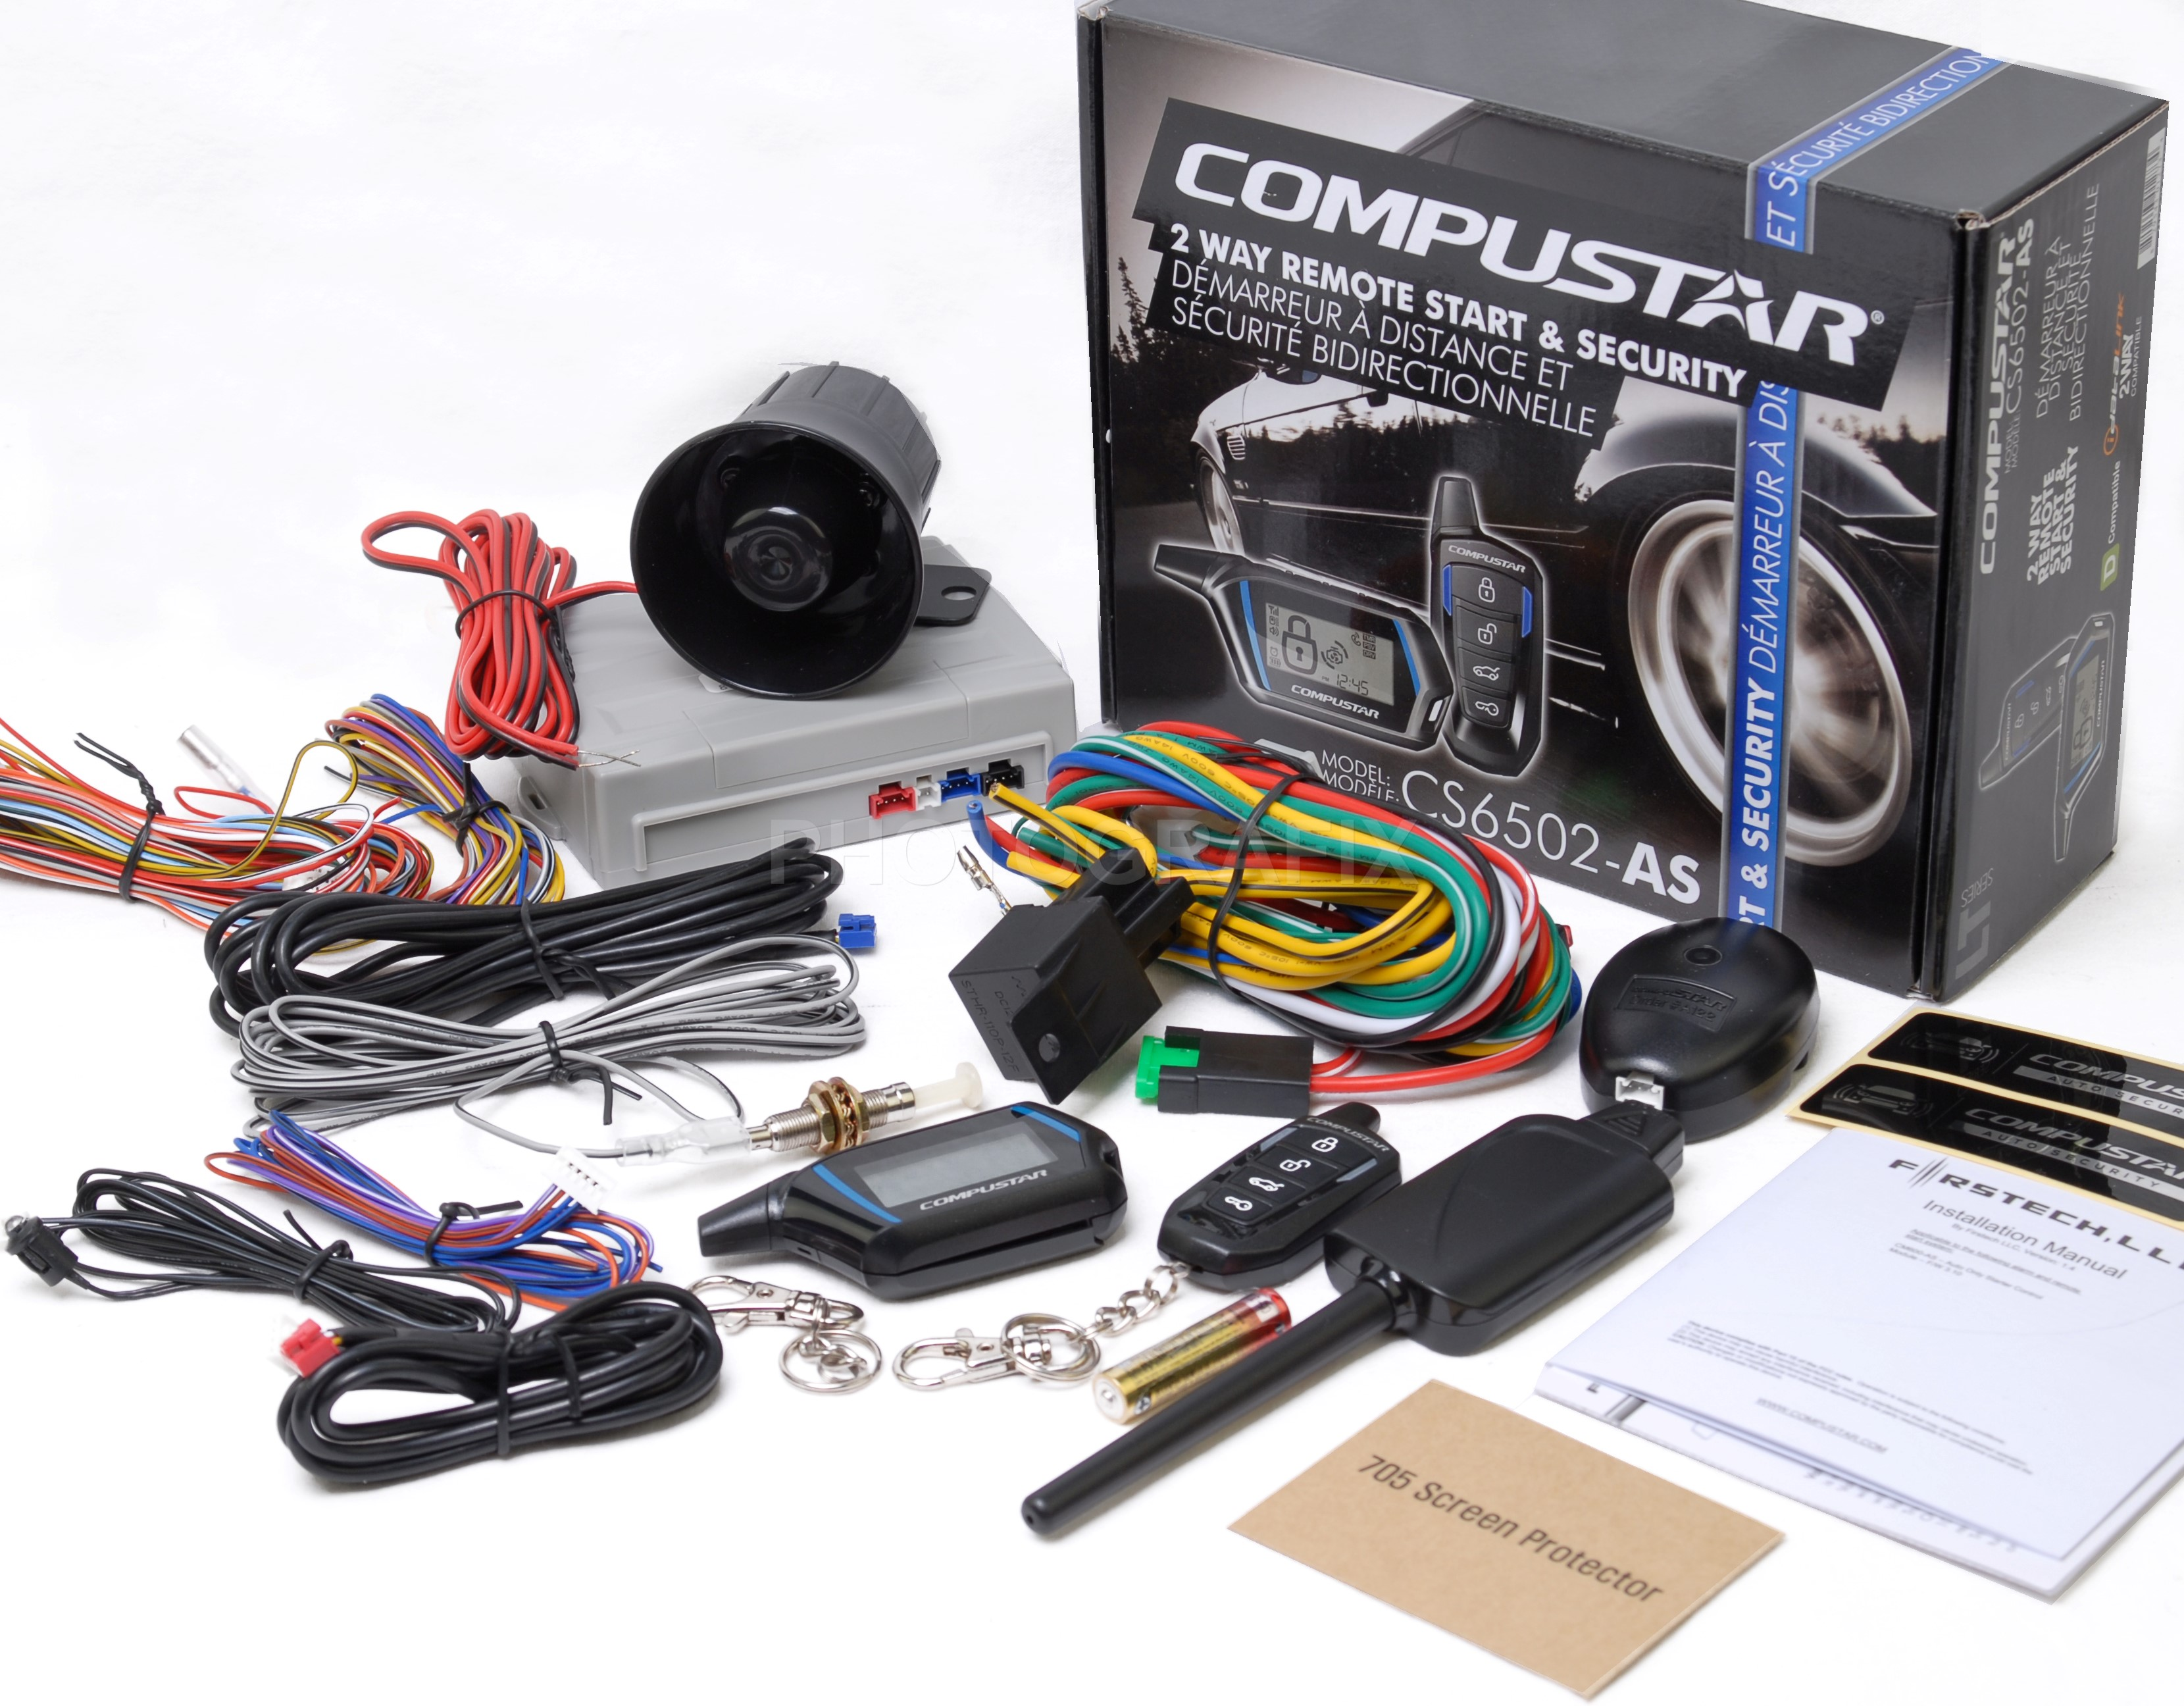 compustar cs6502 as 2 way remote car starter alarm system replaced cs6102 as